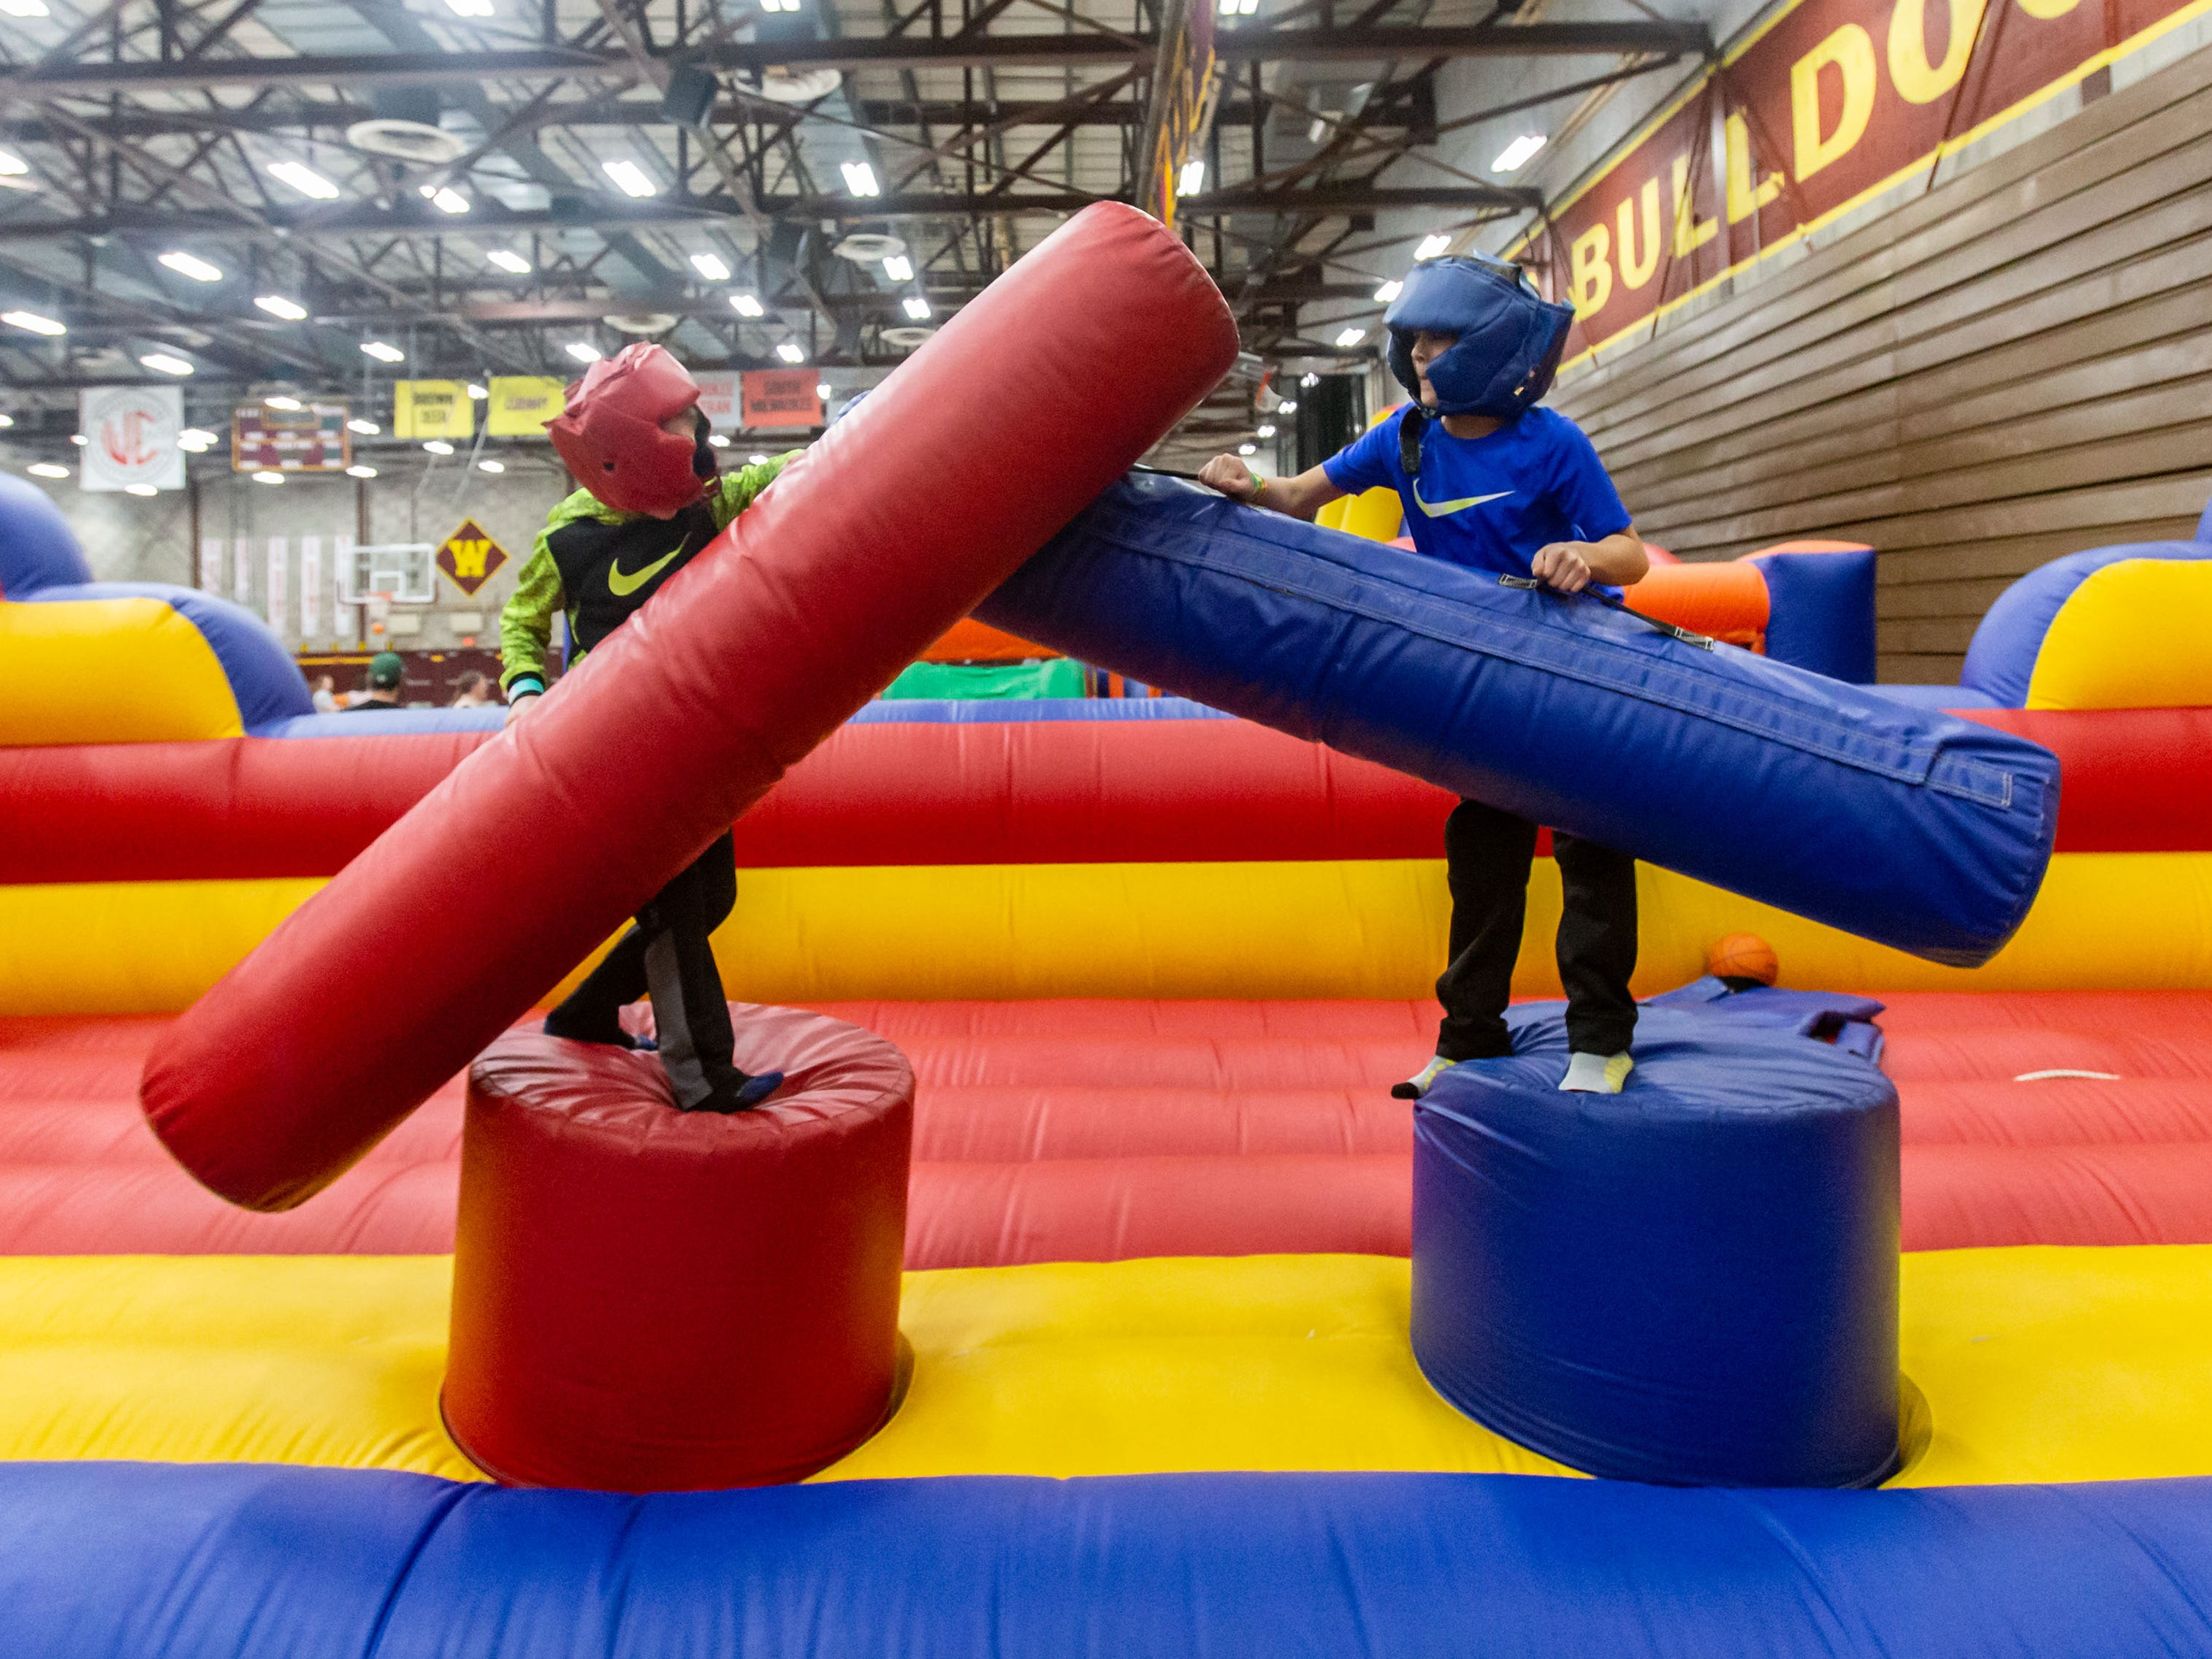 Landon Combs (left), 6, and Jayden Kinder, 10, of Hales Corners, play a jousting game during the New Year's Eve Family Night at West Allis Central High School hosted by CAAD - West Allis (the West Allis-West Milwaukee Community Alliance Against Drugs) on Monday evening, Dec. 31, 2018.